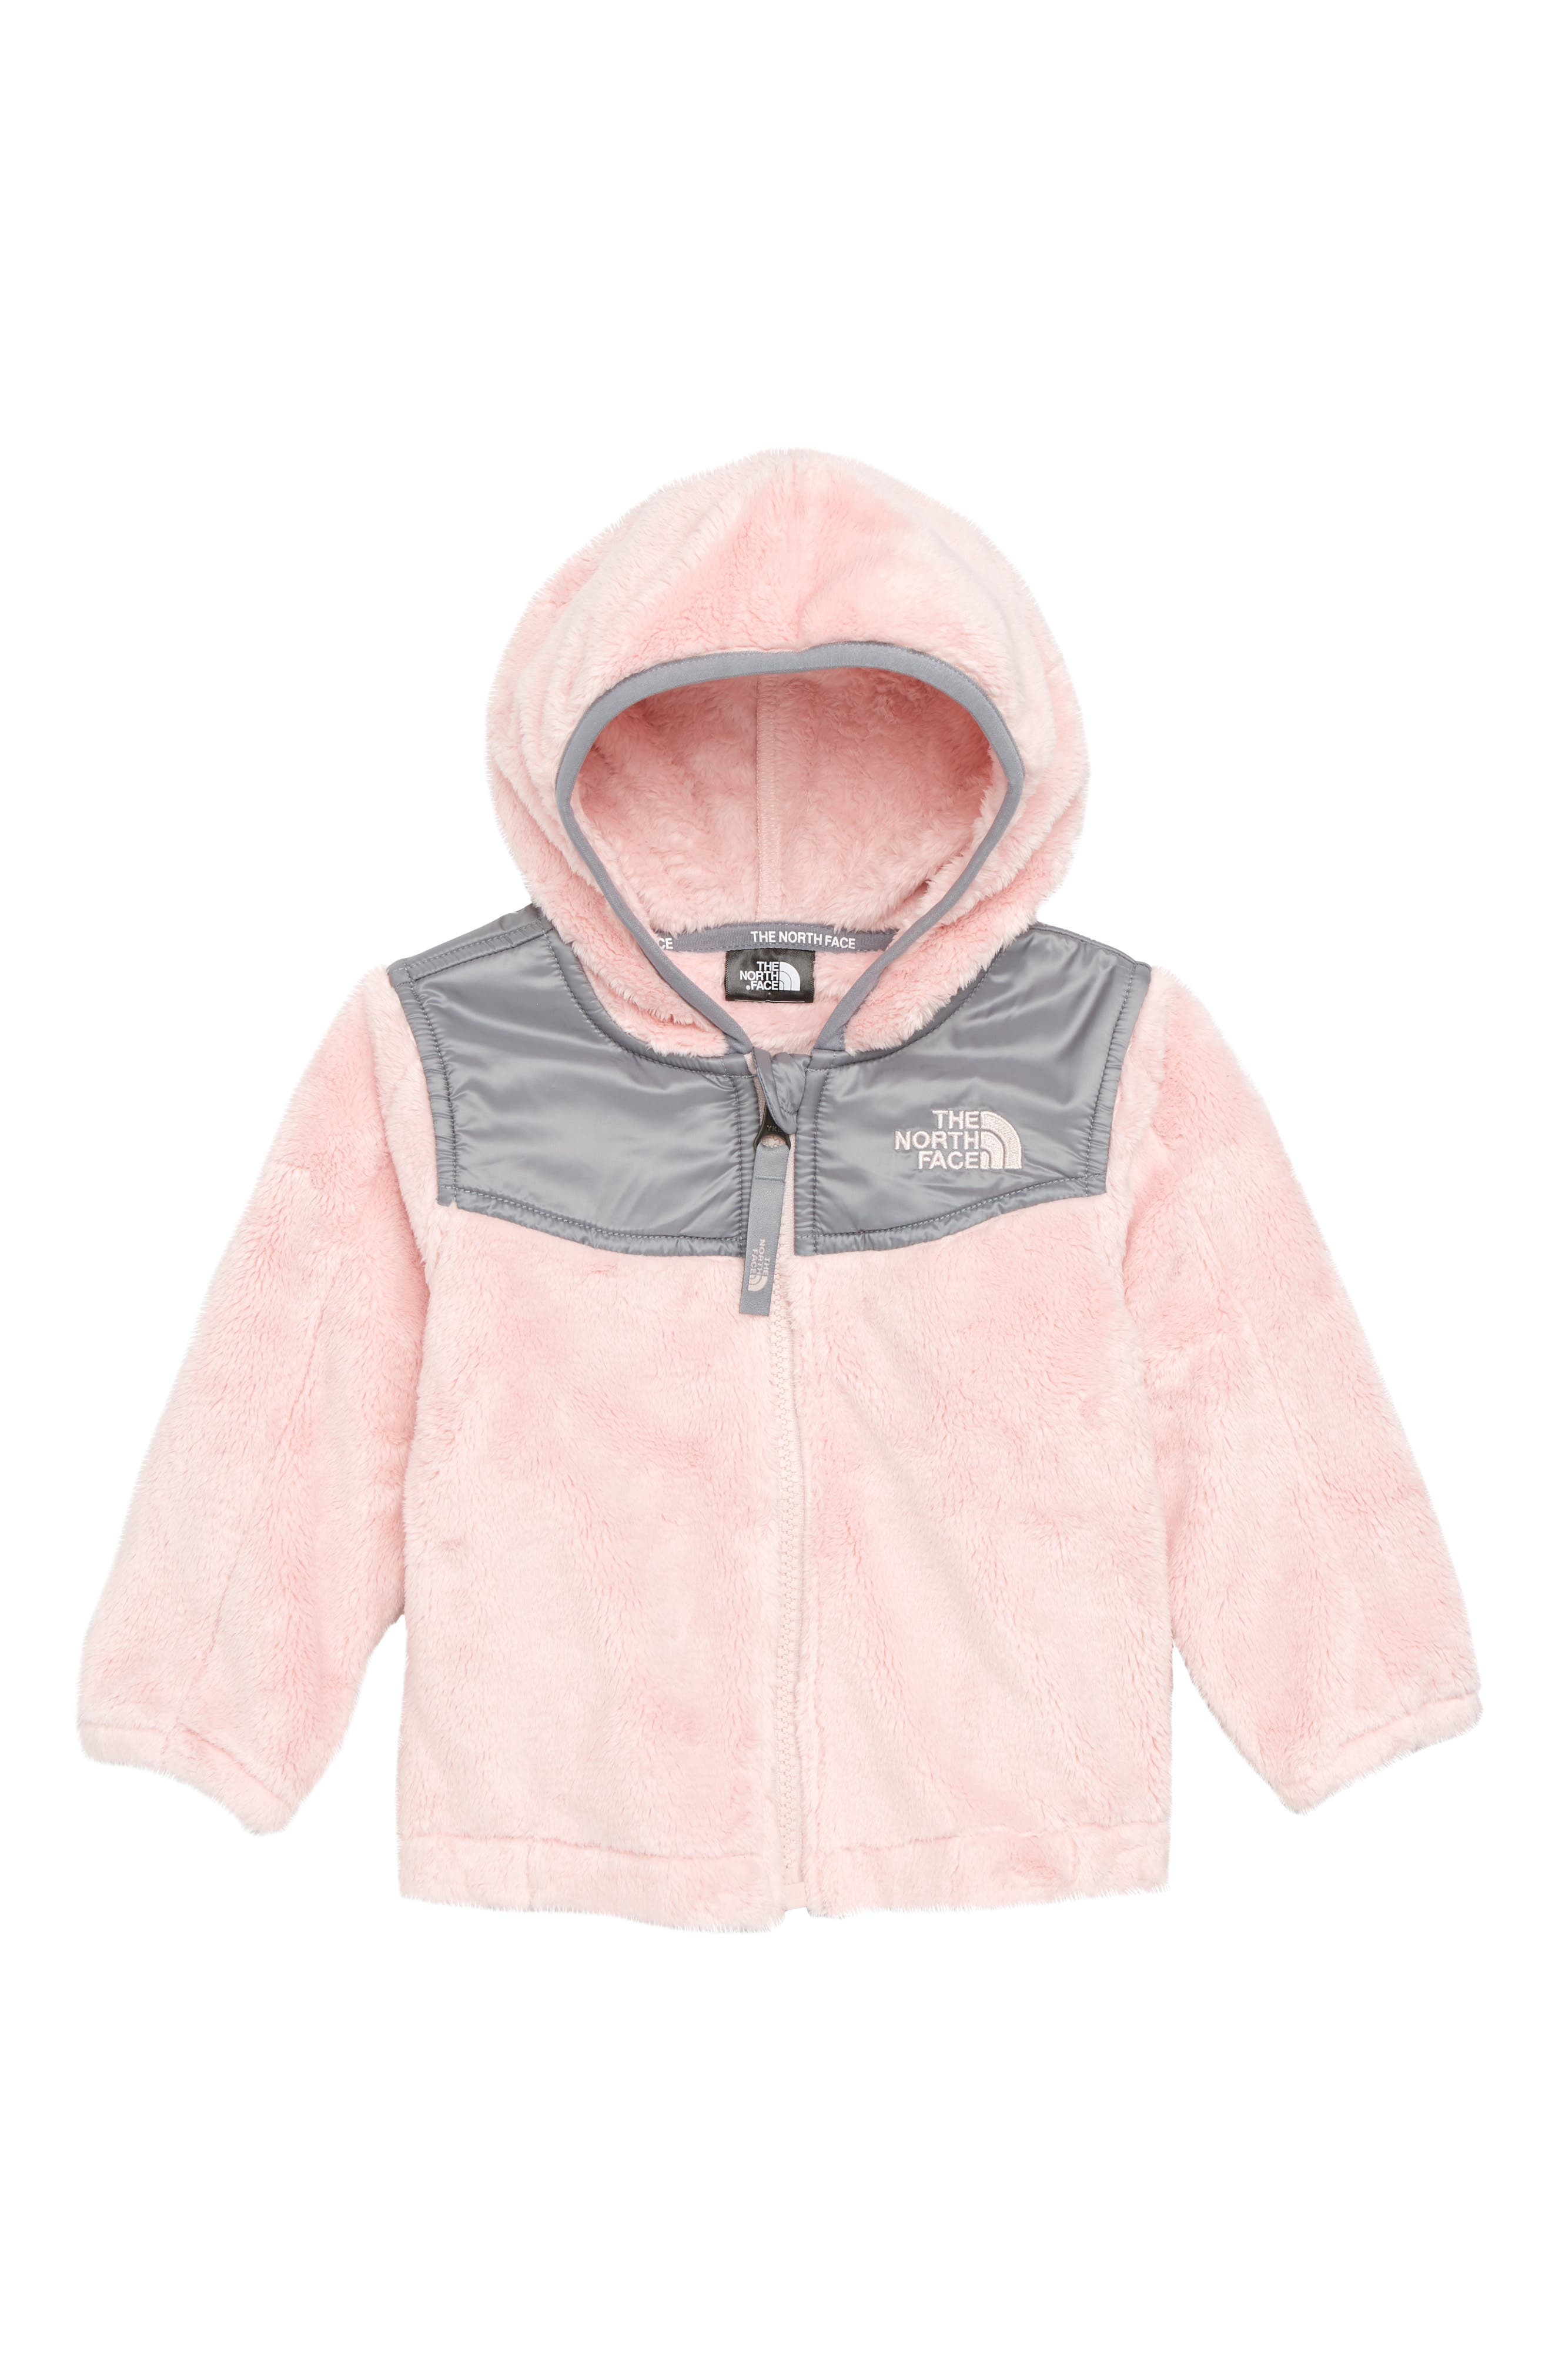 Oso Hooded Fleece Jacket,                         Main,                         color, PURDY PINK